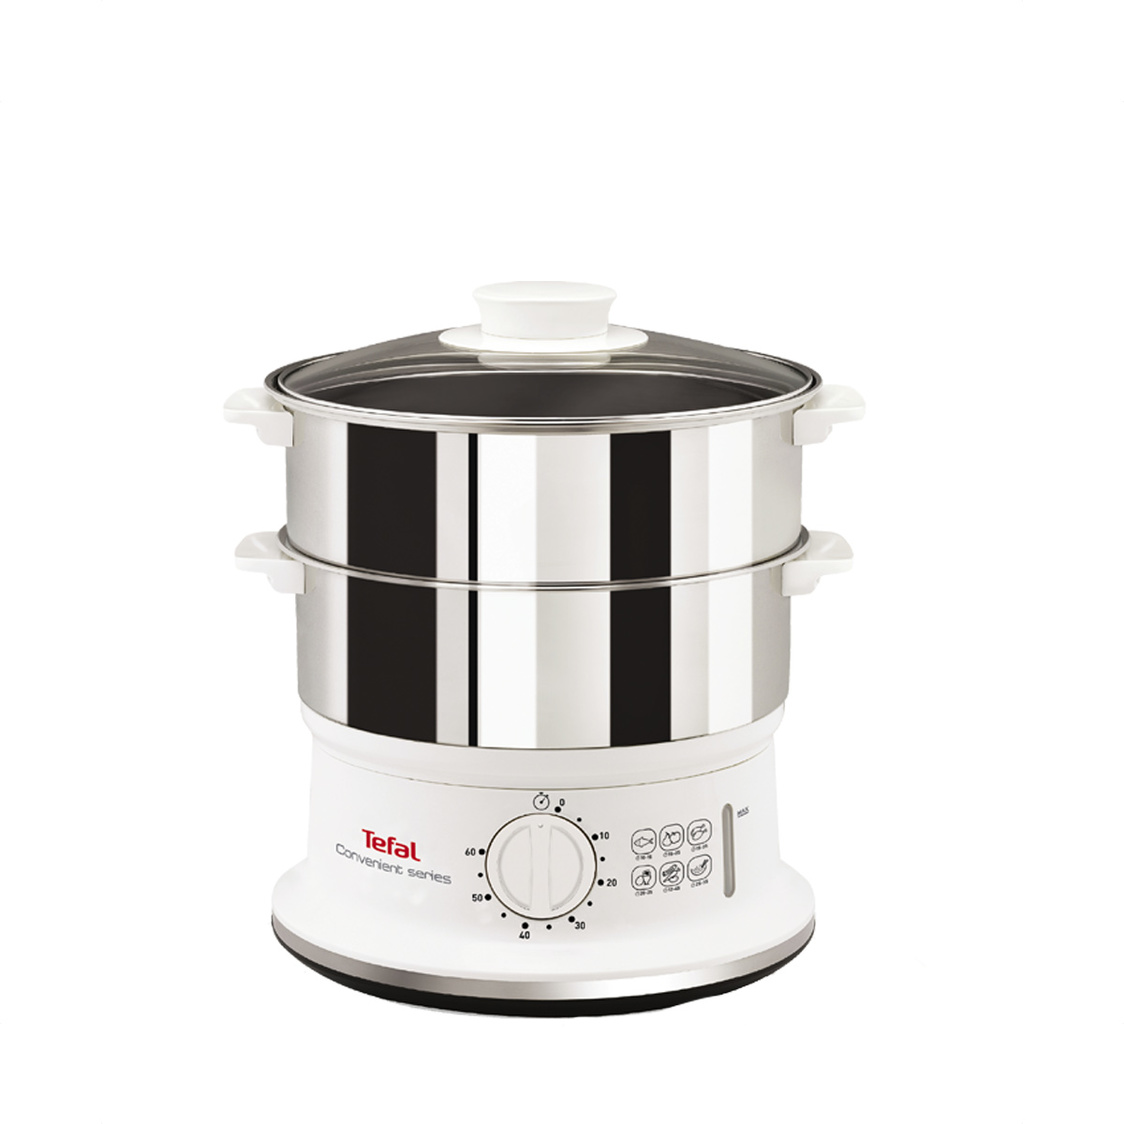 Stainless Steel Convenient Steamer VC145140